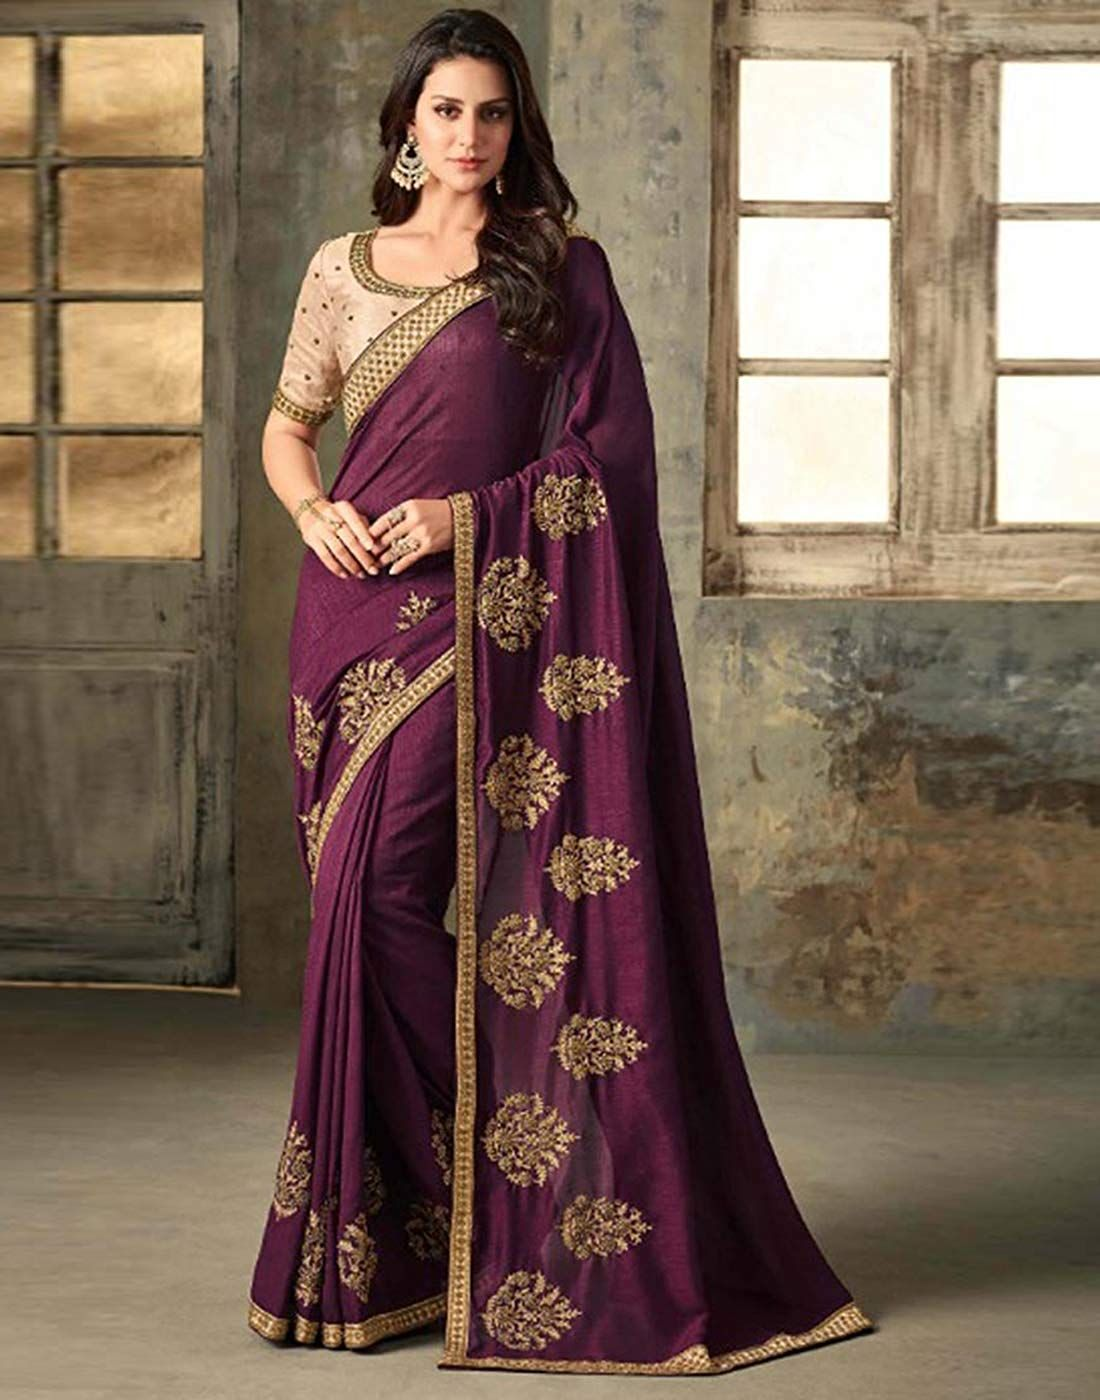 1f1421e0537f4f DesiButik s Party Wear Lovely Wine Silk Saree  Amazon.in  Clothing    Accessories